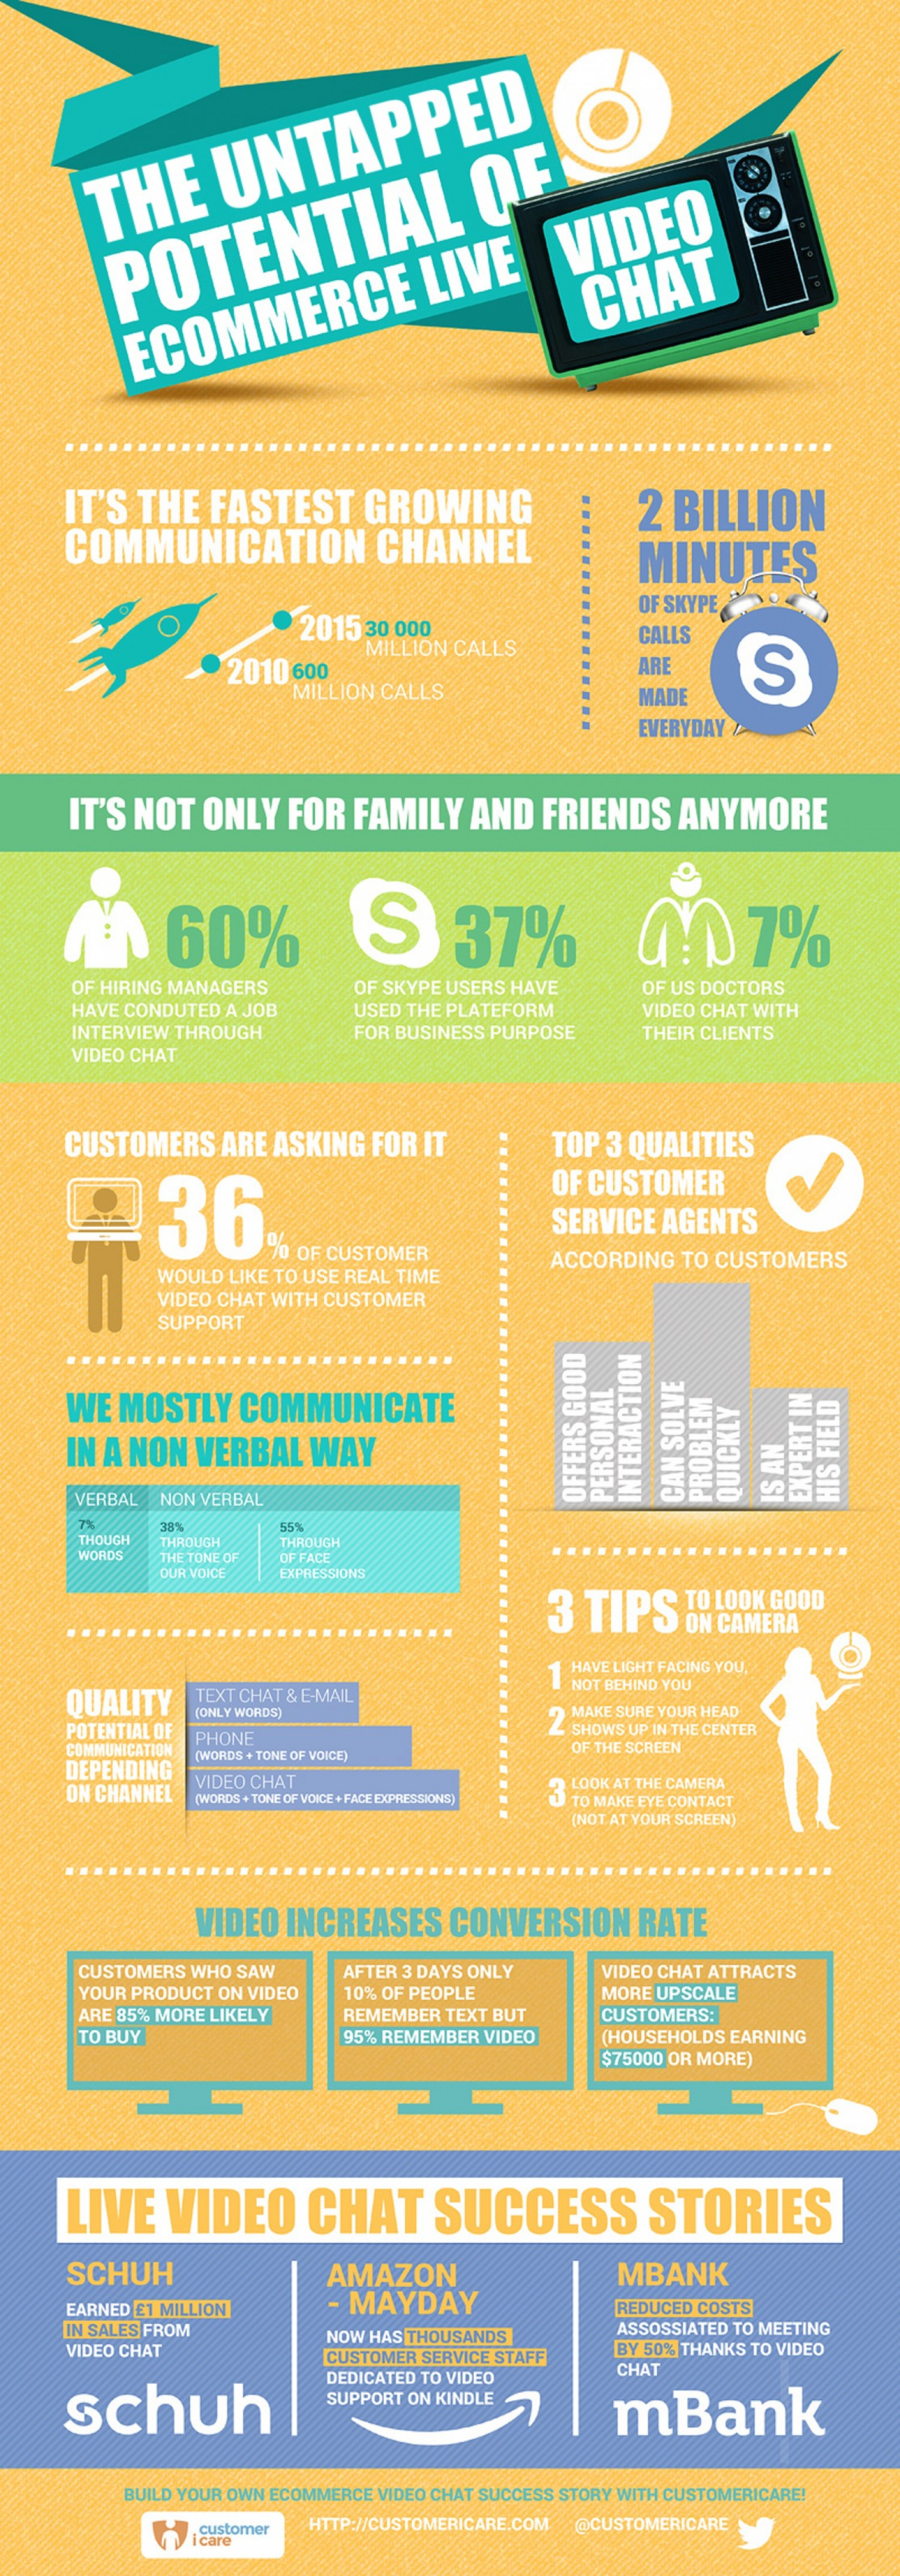 The Untapped Potential of Ecommerce Live Video Chat Infographic